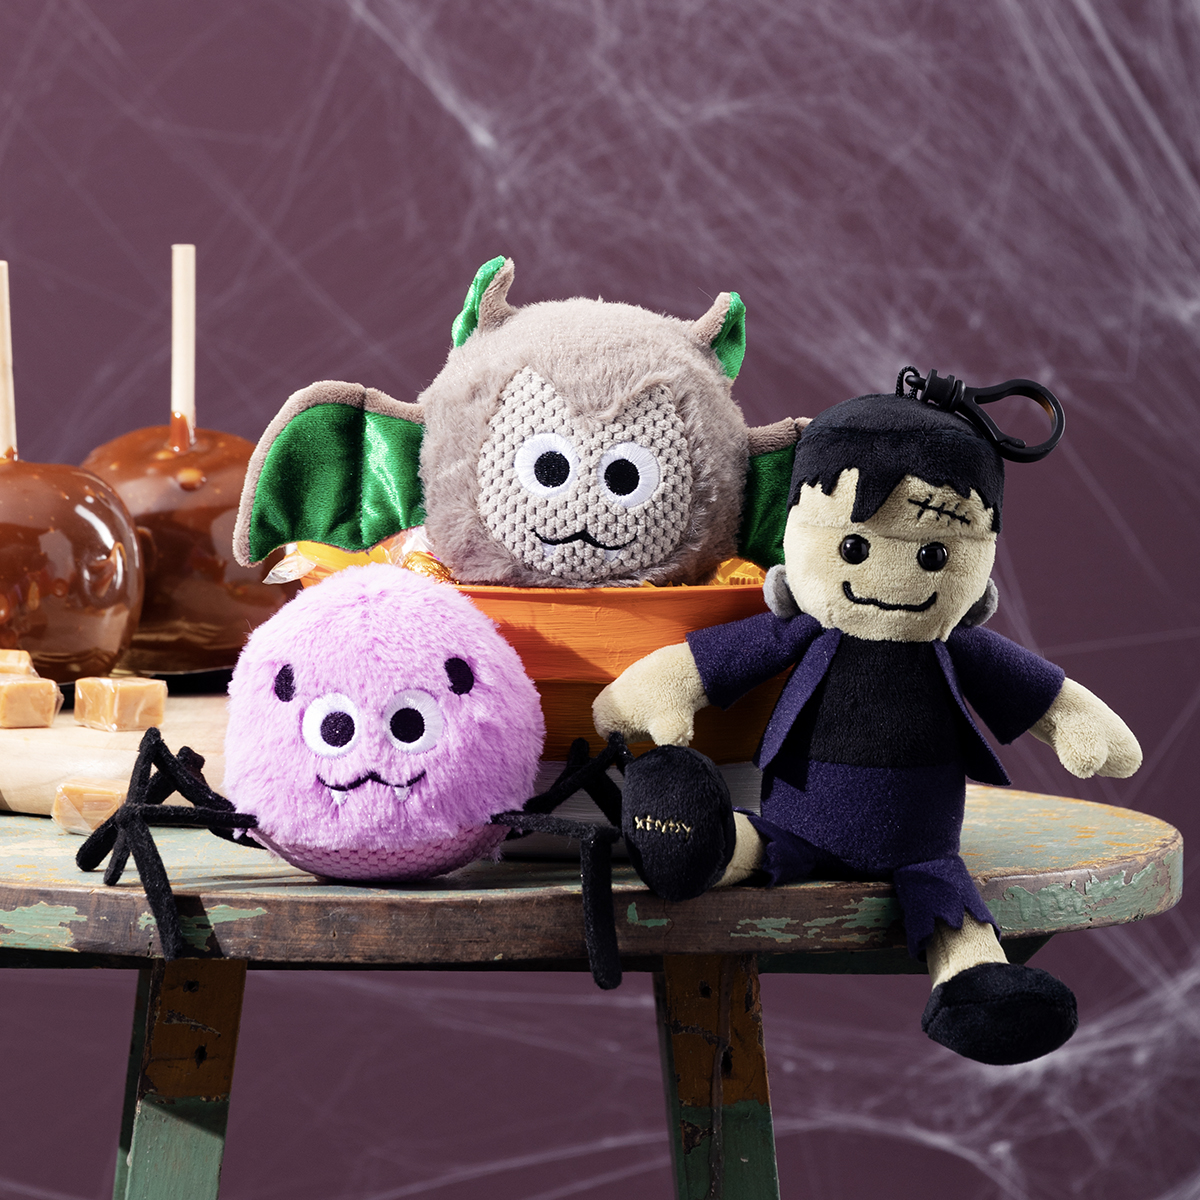 Scentsy harvest 2021 Collection Bitty Buddies and Clips | Bat Scentsy Bitty Buddy + Caramel Apple Craze | Incandescent.Scentsy.us